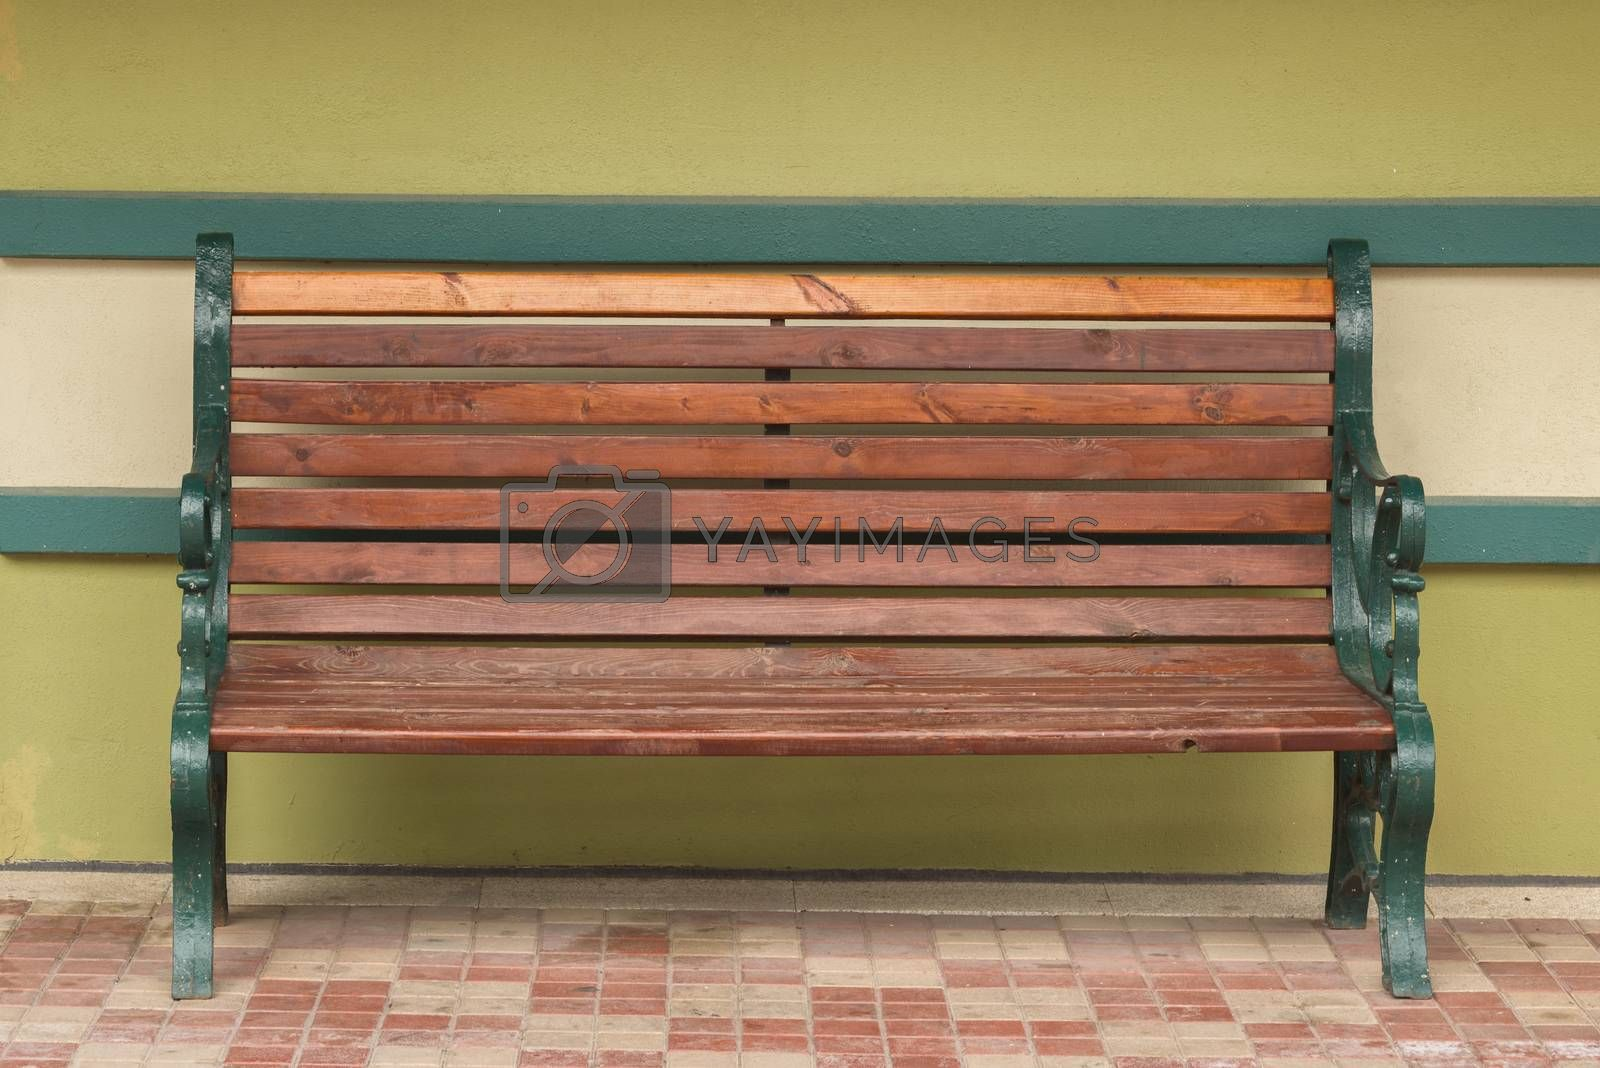 Bench against the wall. Old wooden bench